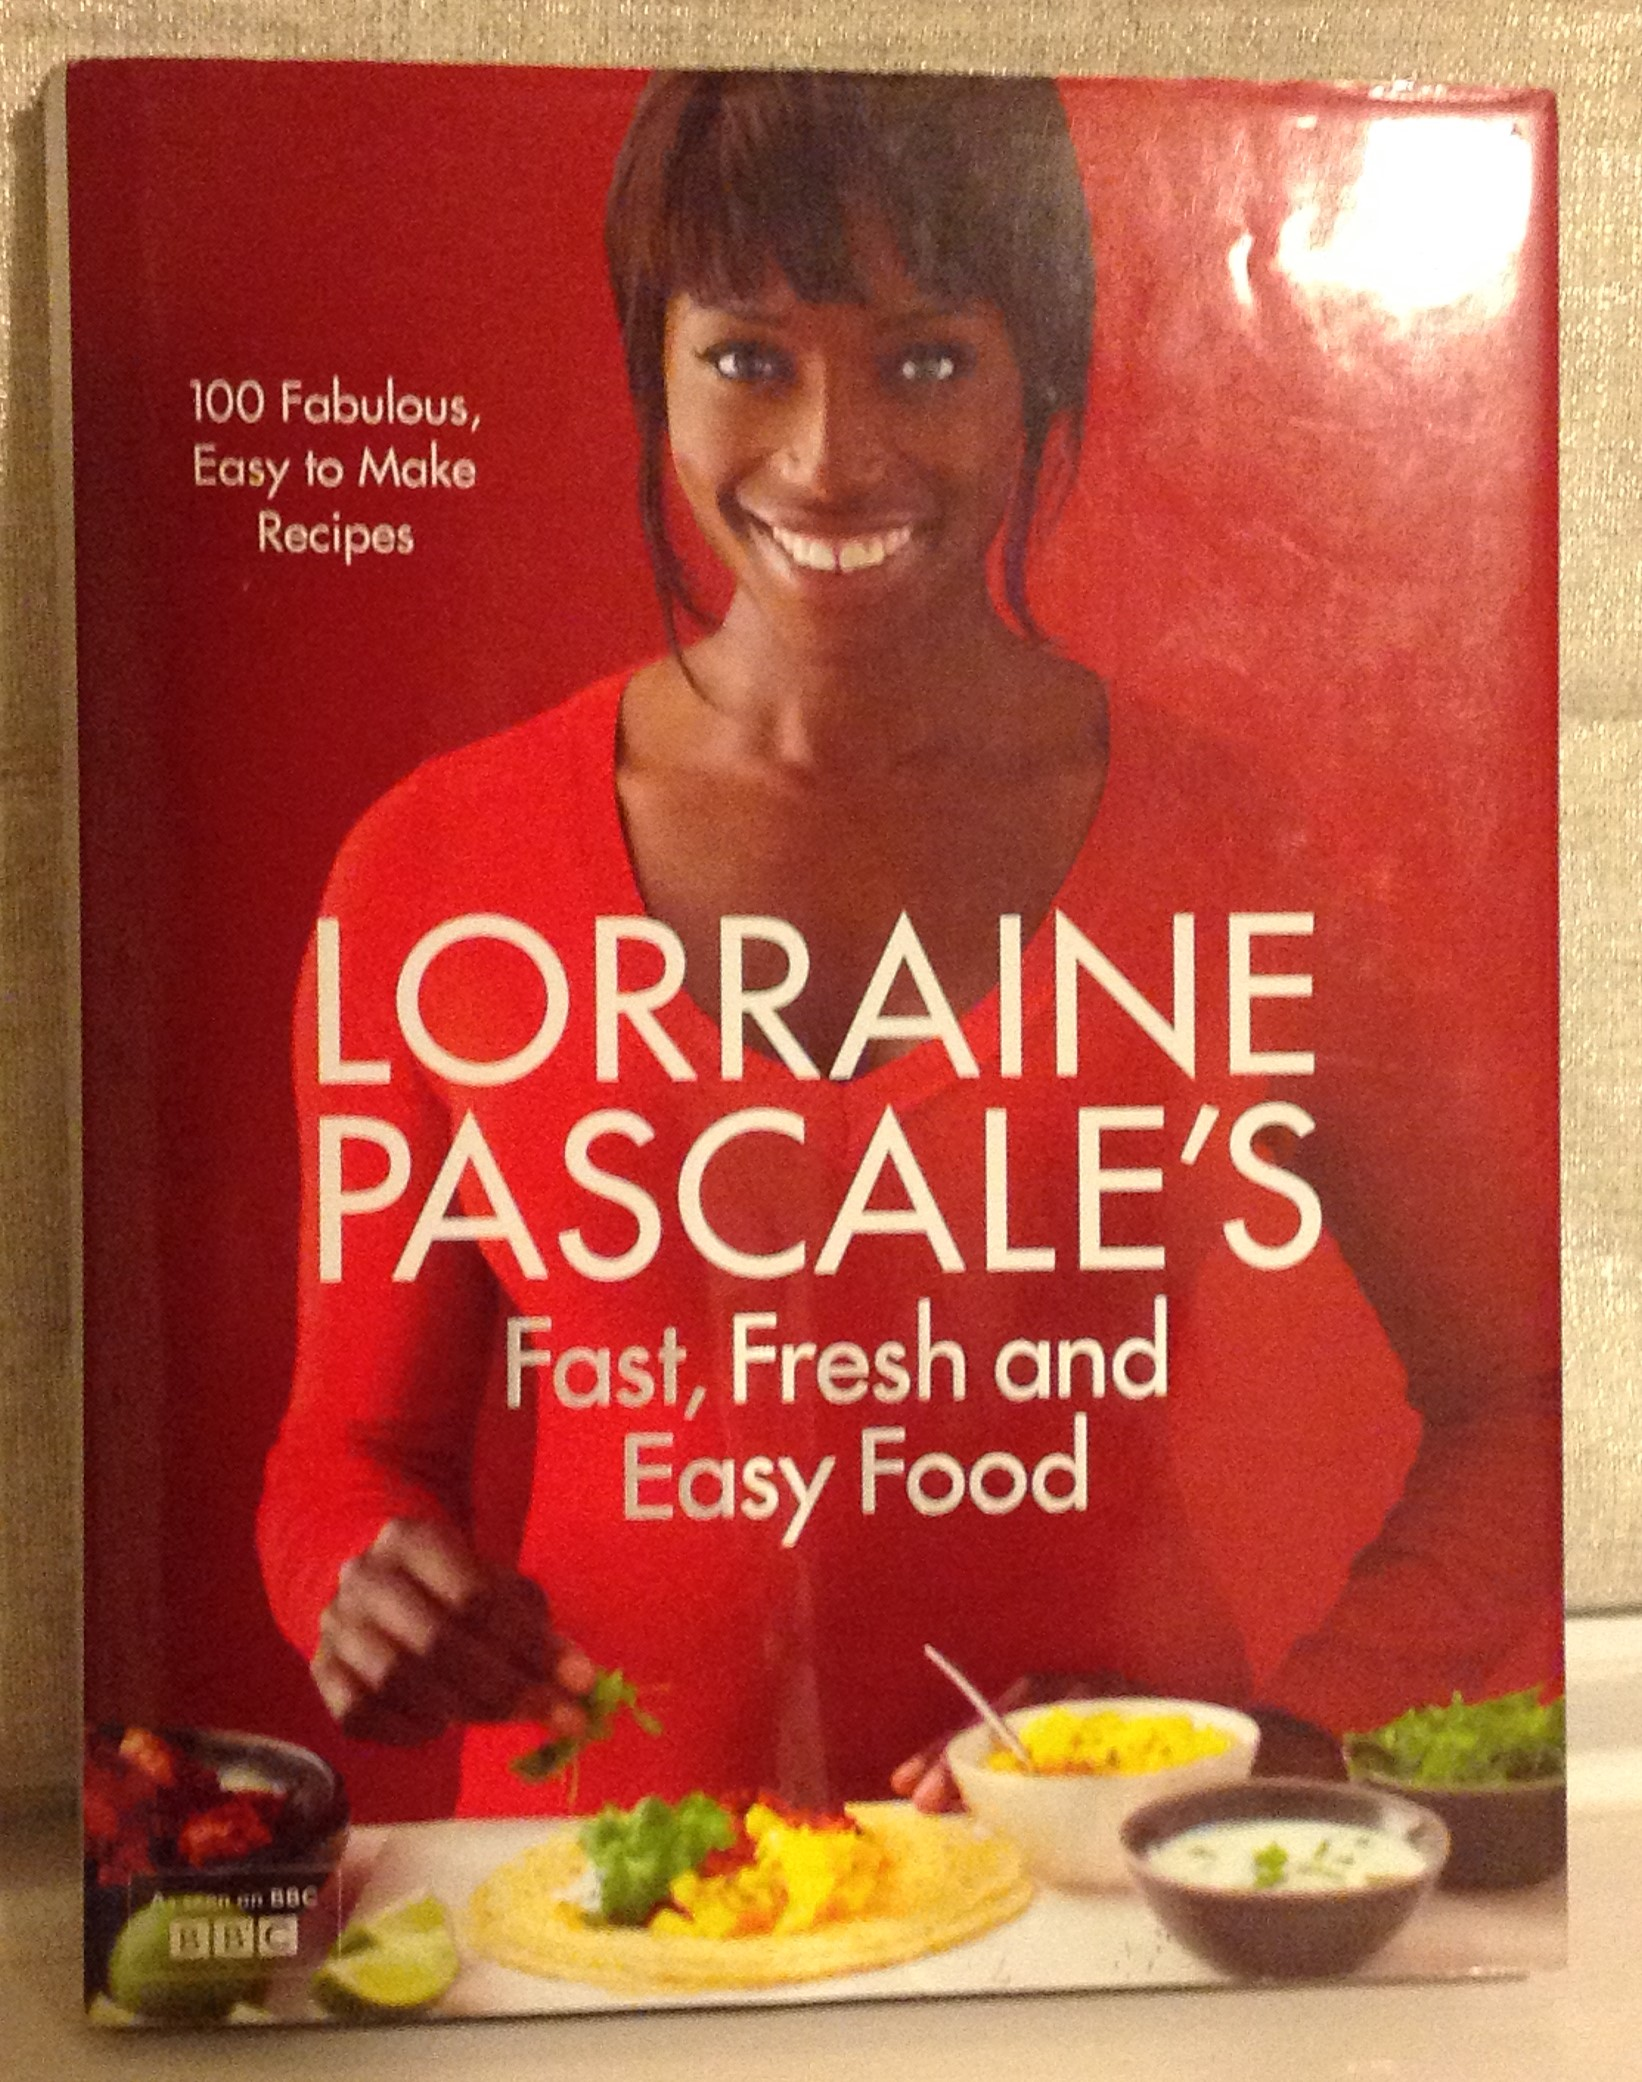 Fast Easy Food with Lorraine Pascale